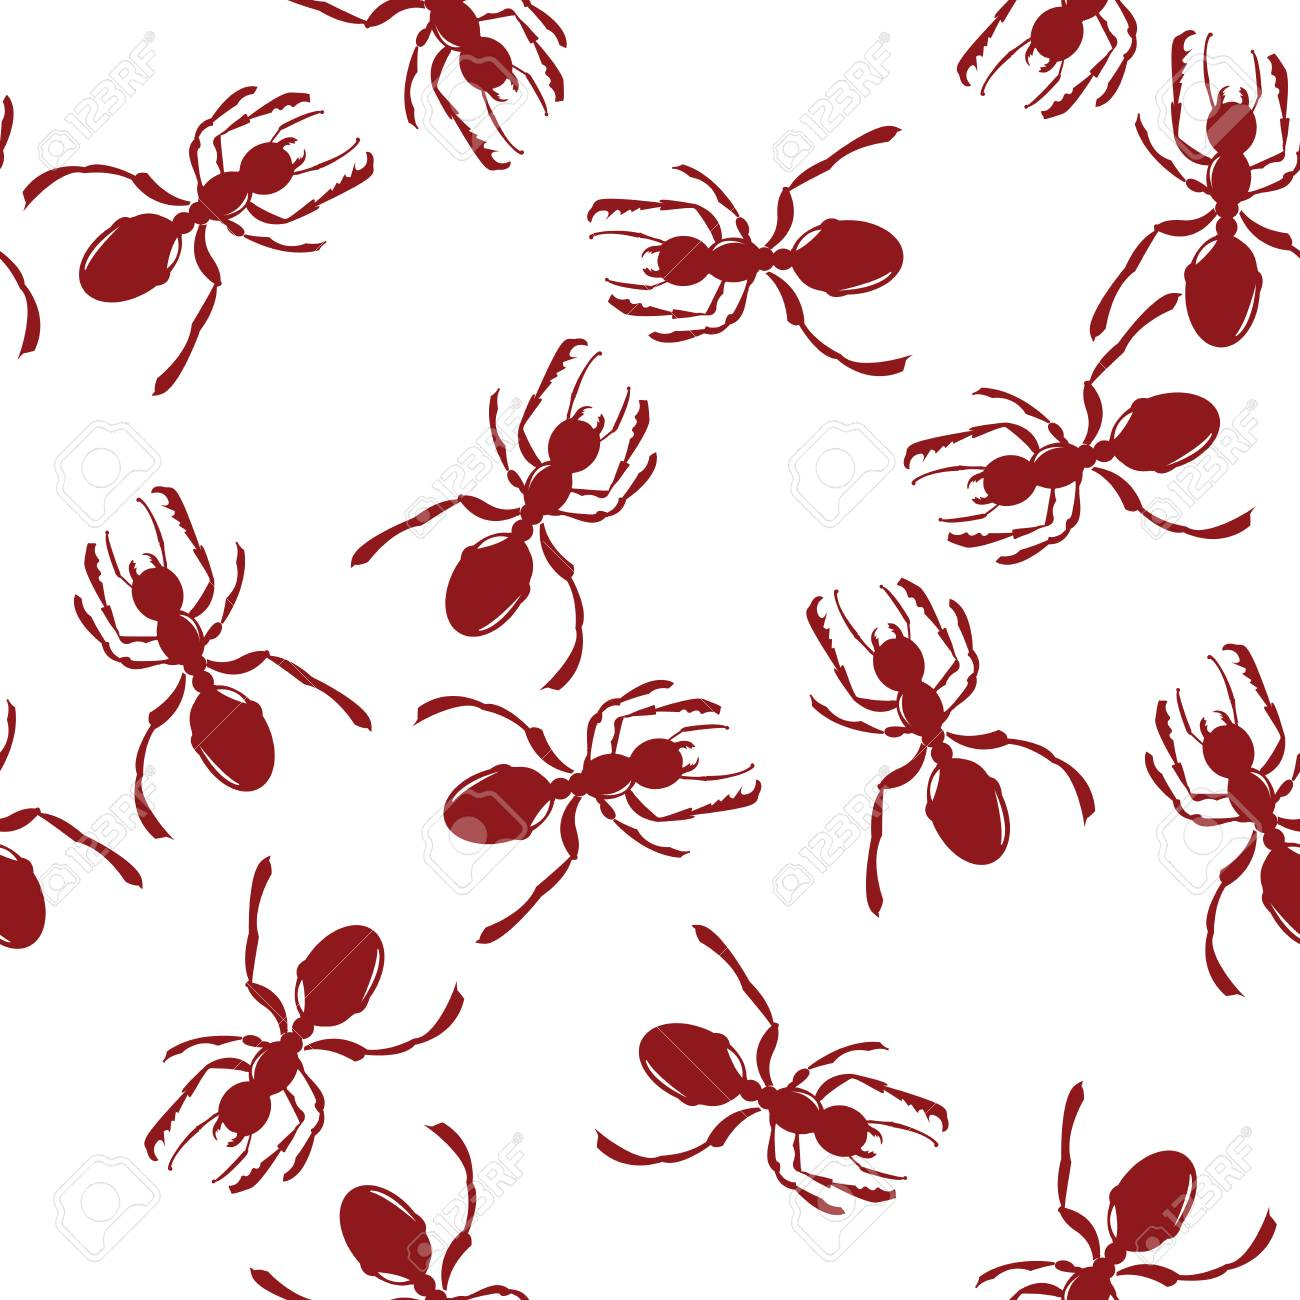 Pattern with red ants over white Stock Vector - 6564117